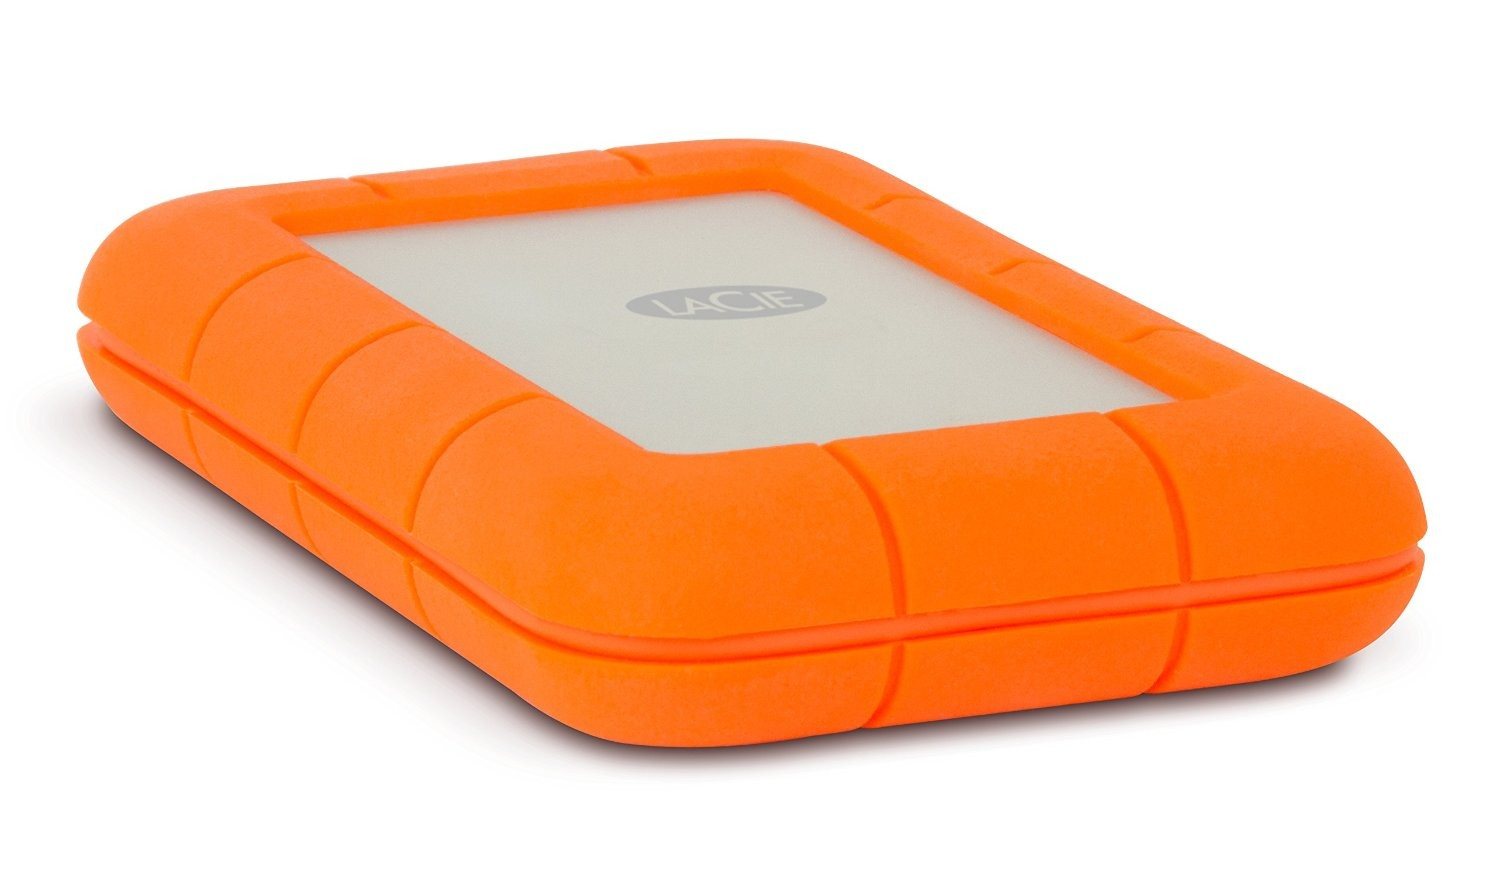 Lacie 2TB Rugged Thunderbolt U0026 USB 3.0 With Integrated Thunderbolt Cable  STEV2000400